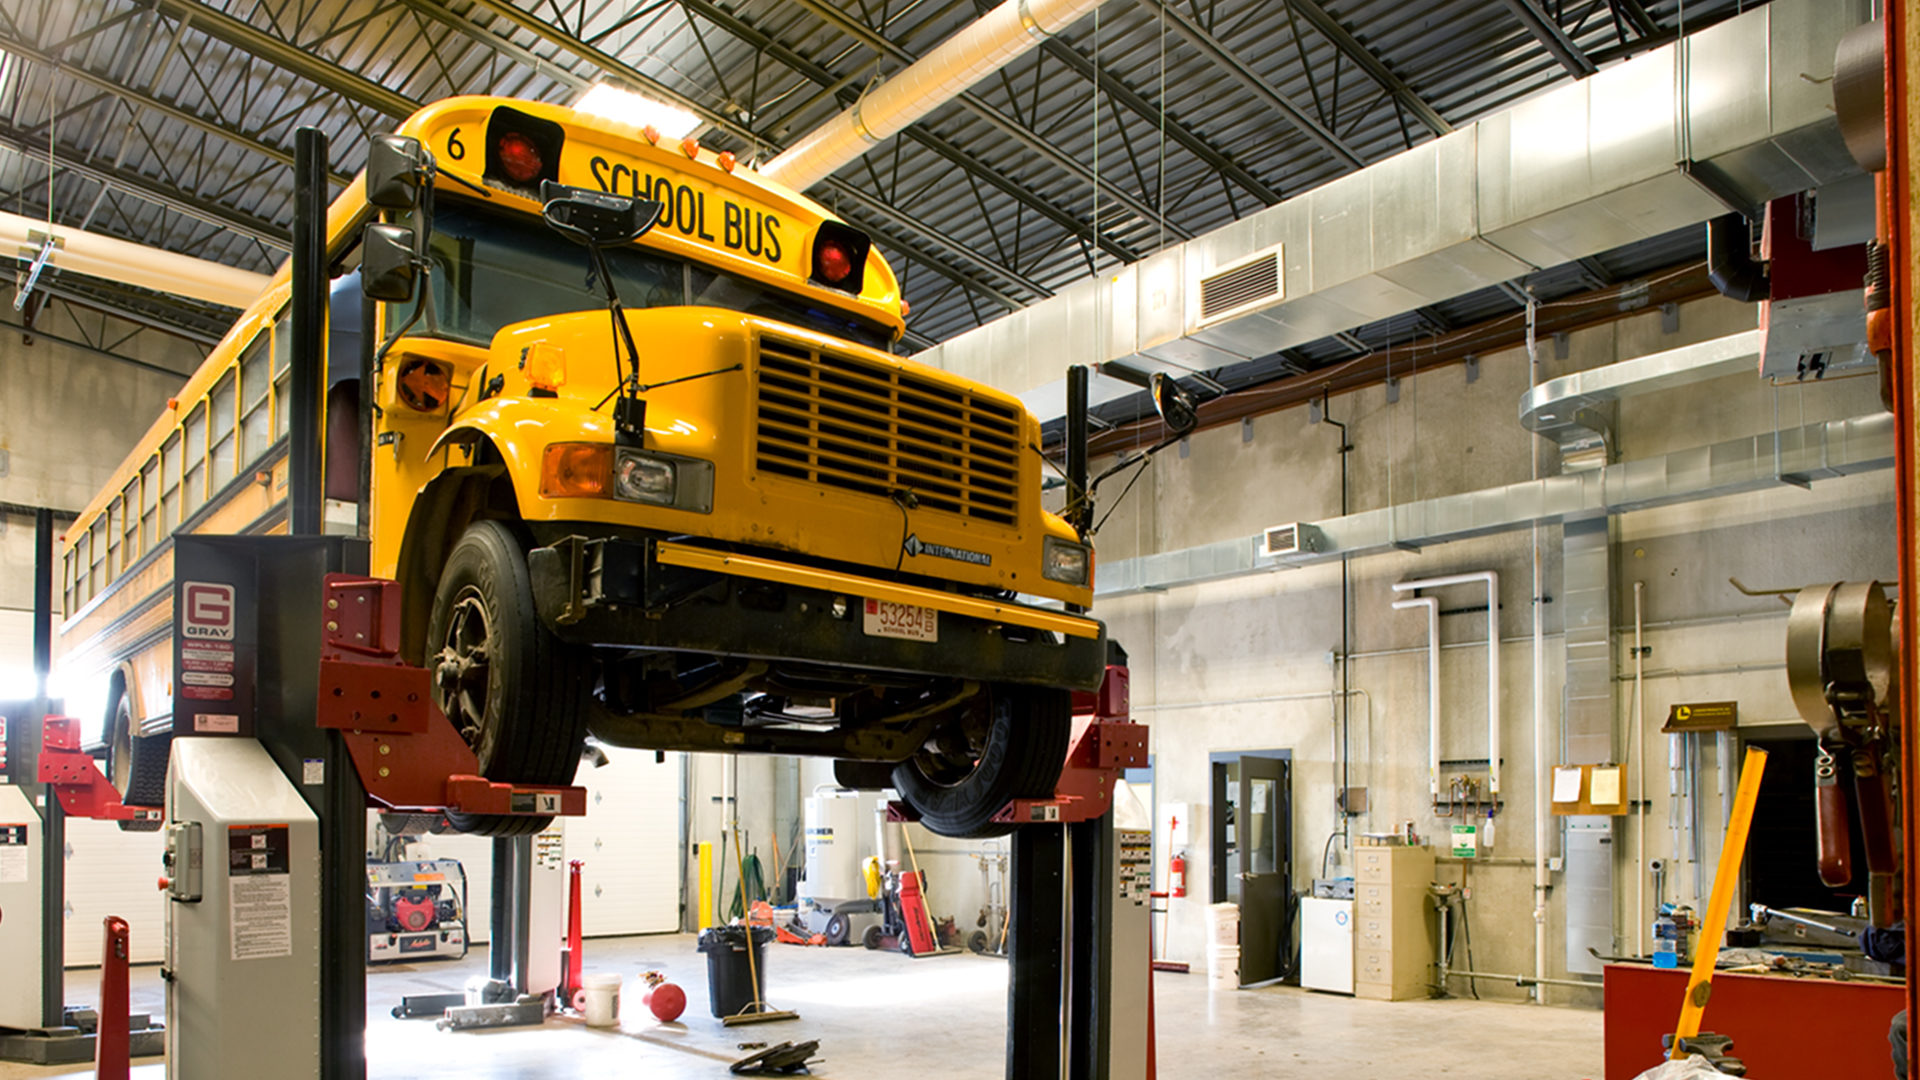 Maple School Transportation Building Poplar WI Interior Garge with a Bus on a Lift